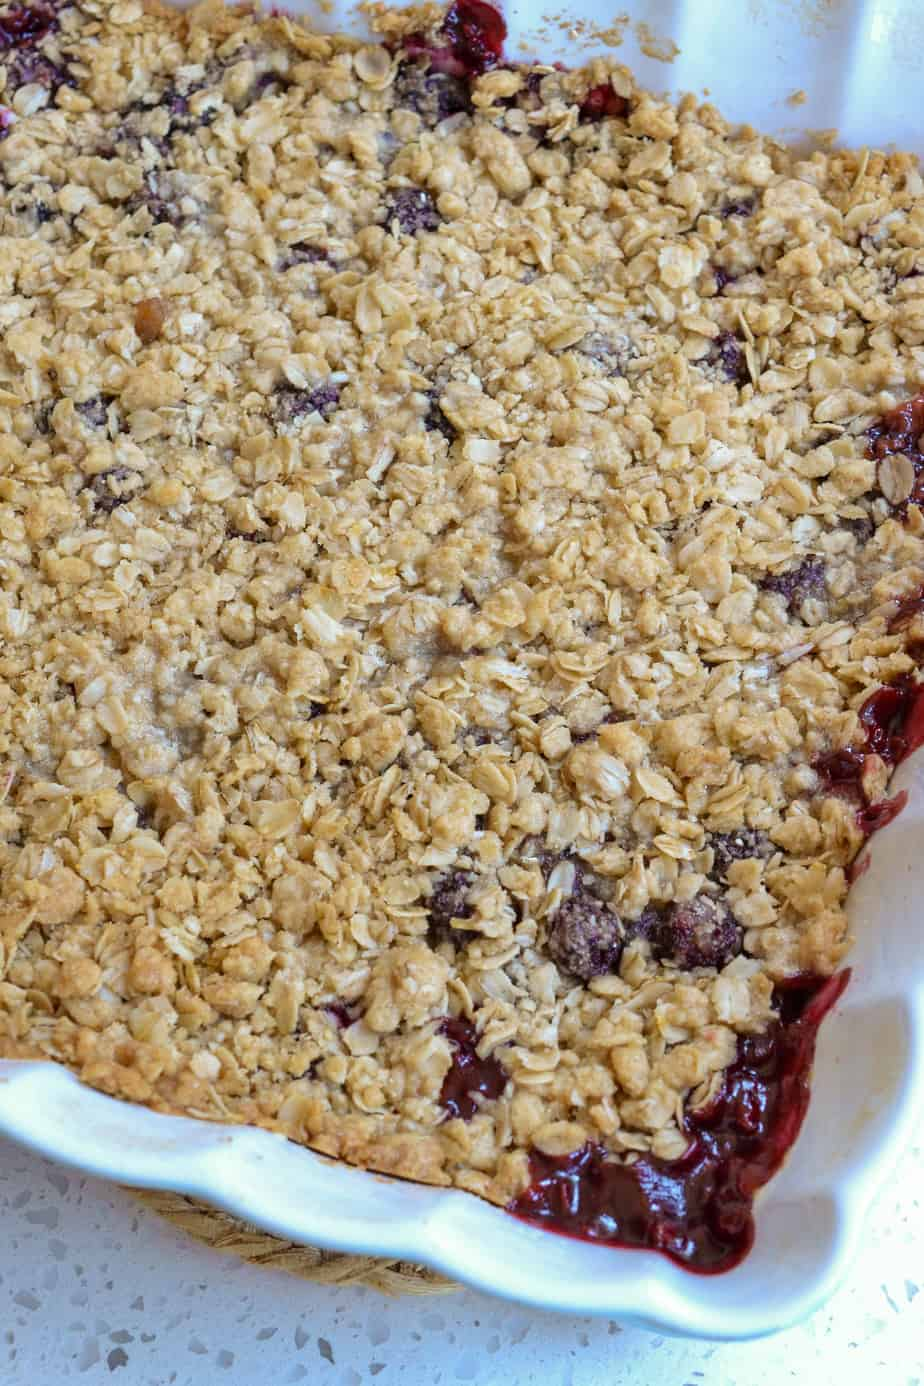 Straight out of the oven blackberry crisp with bubbly edges.